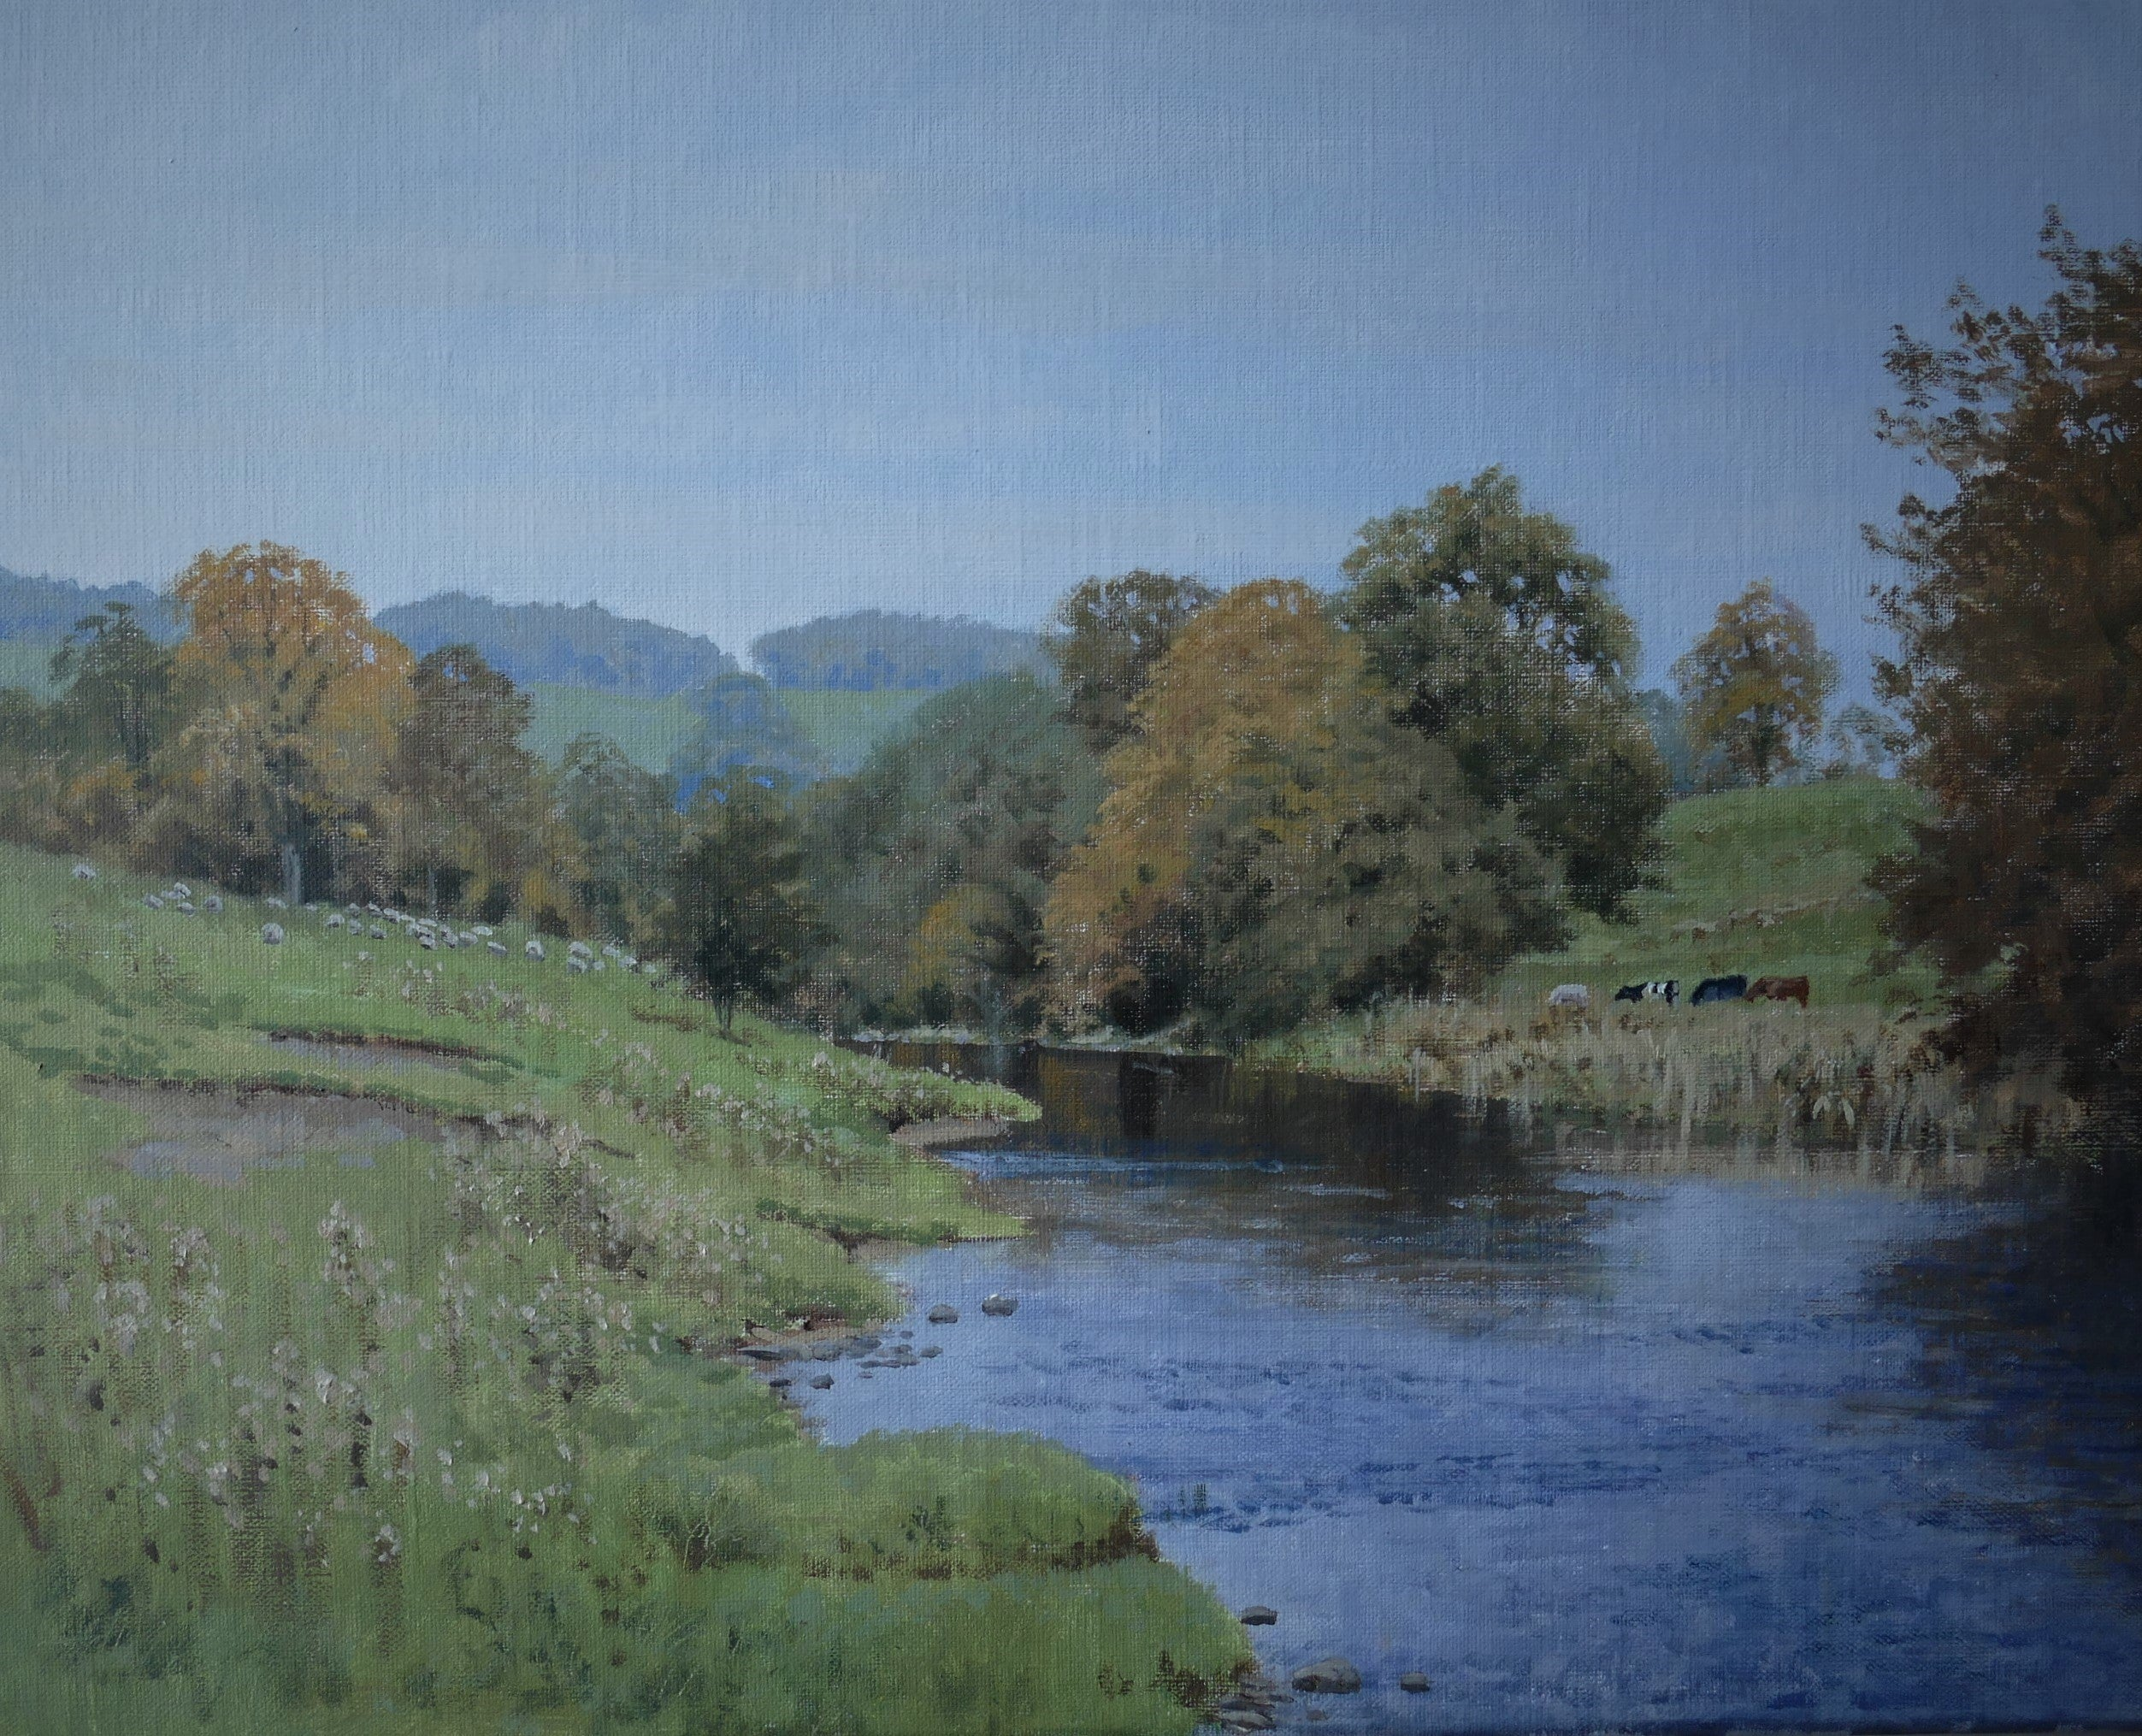 'Autumn on the Hodder' - Original Oil Painting by Alistair Makinson - 40 x 50cm